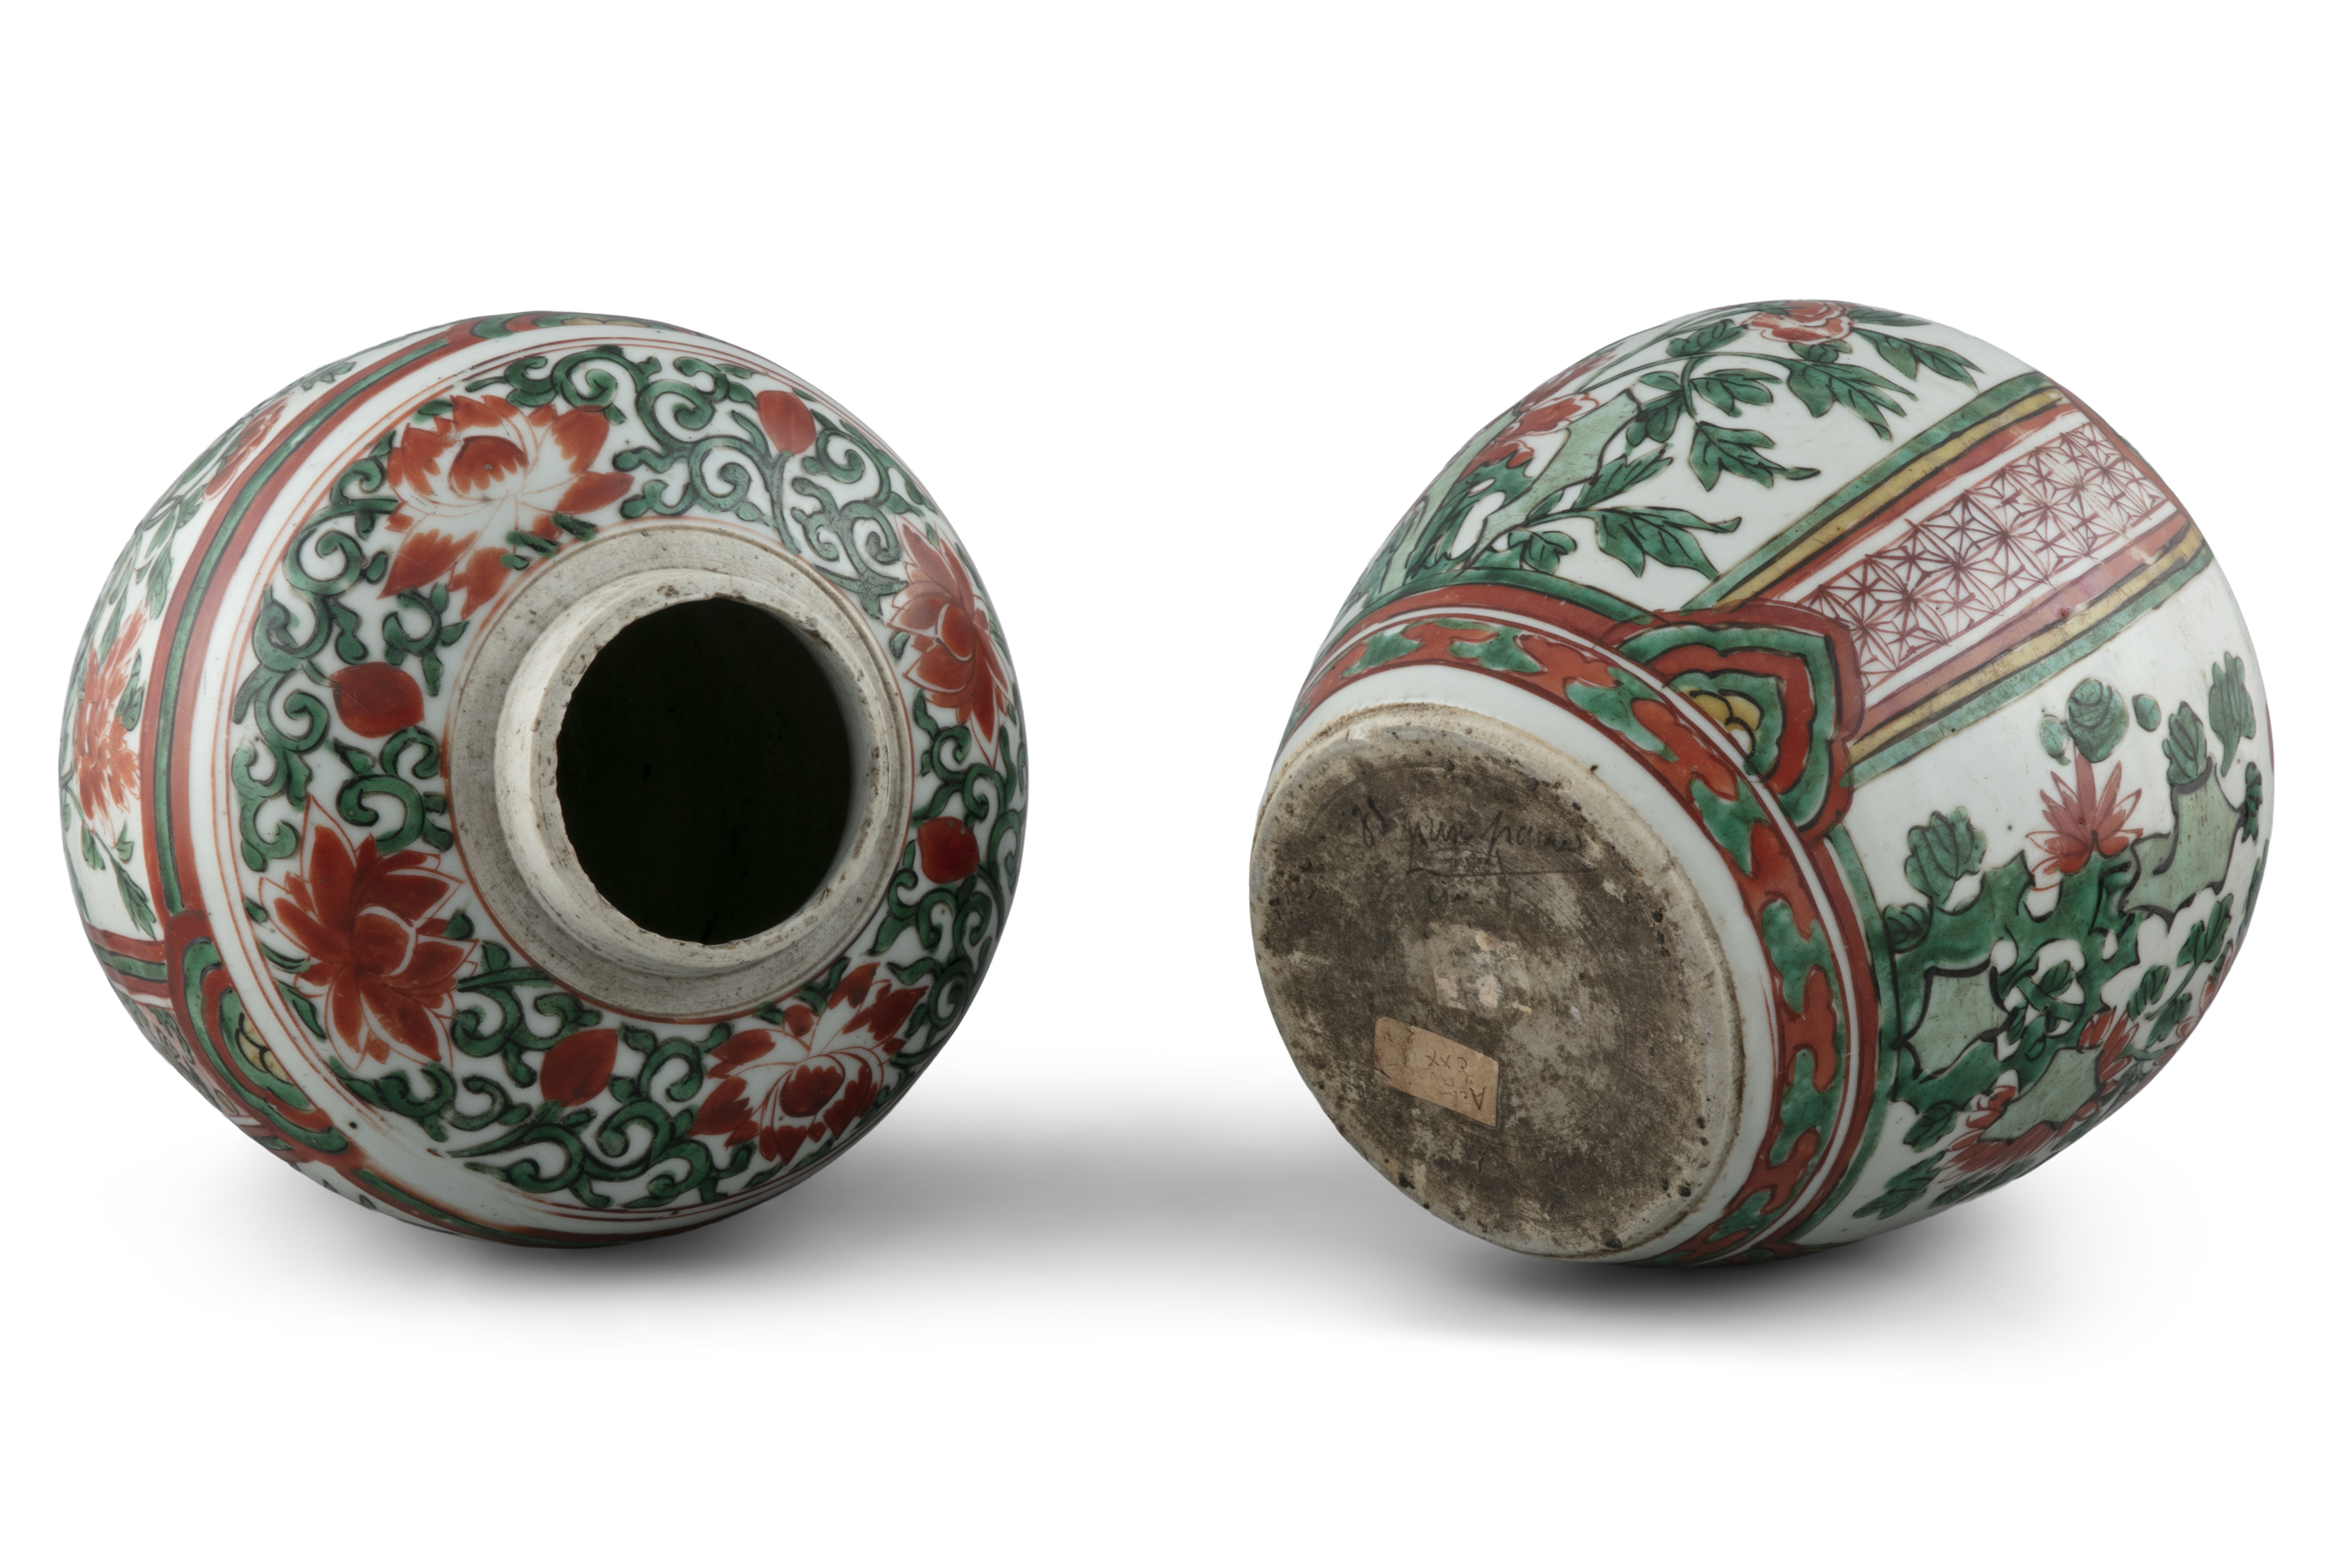 A NEAR PAIR OF WUCAI 'CHI DRAGONS' PORCELAIN GINGER JARS China, Transitional period, 17th century - Image 9 of 17